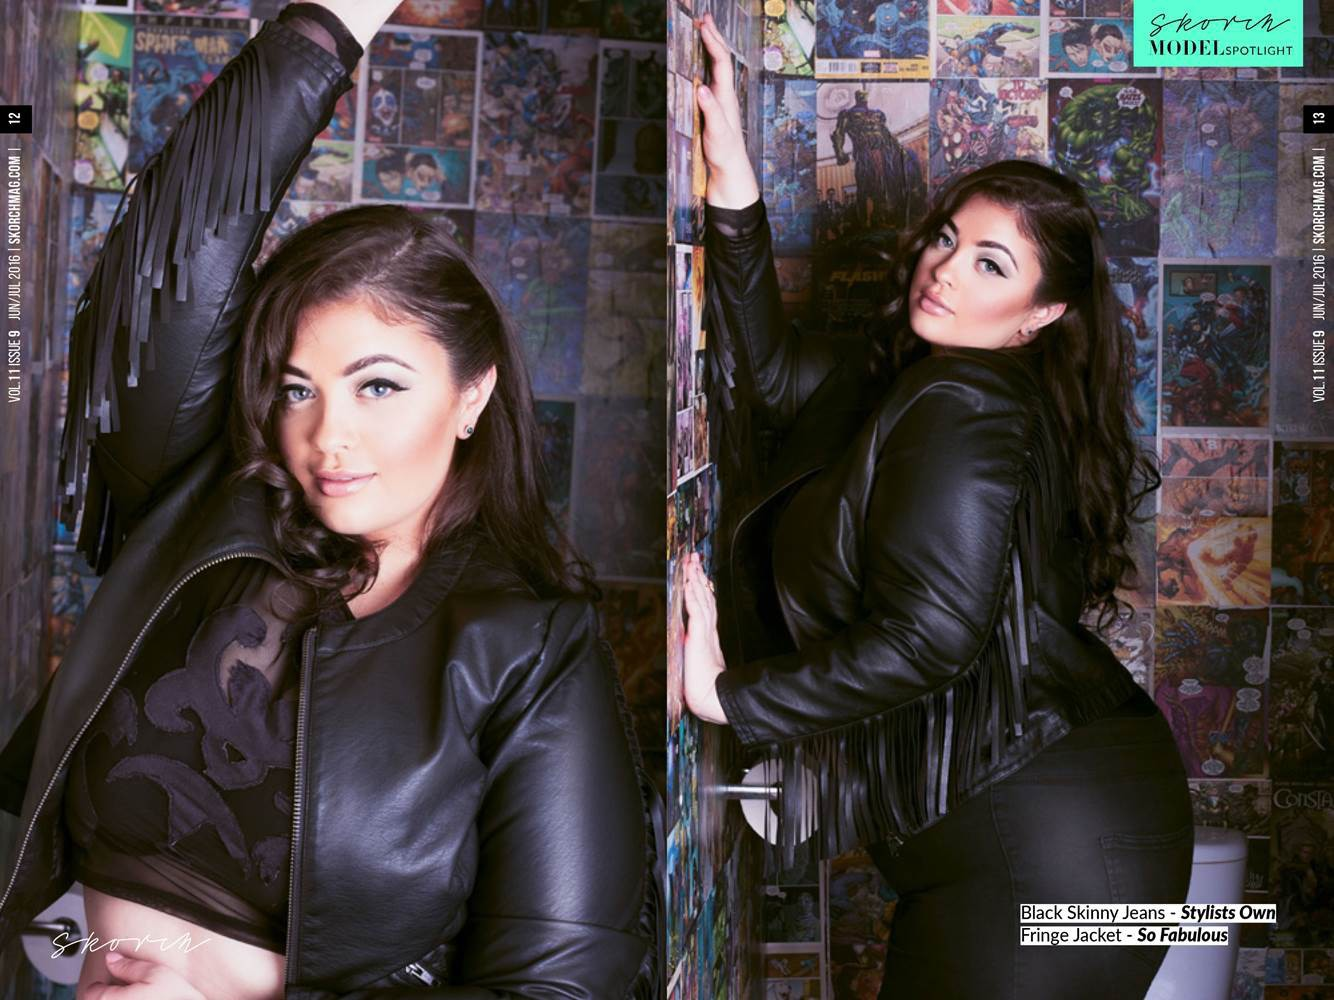 Curve-fashion-model-Chanelle-Skorch-magazine-editorial-top-London-modelling-agency-IMM